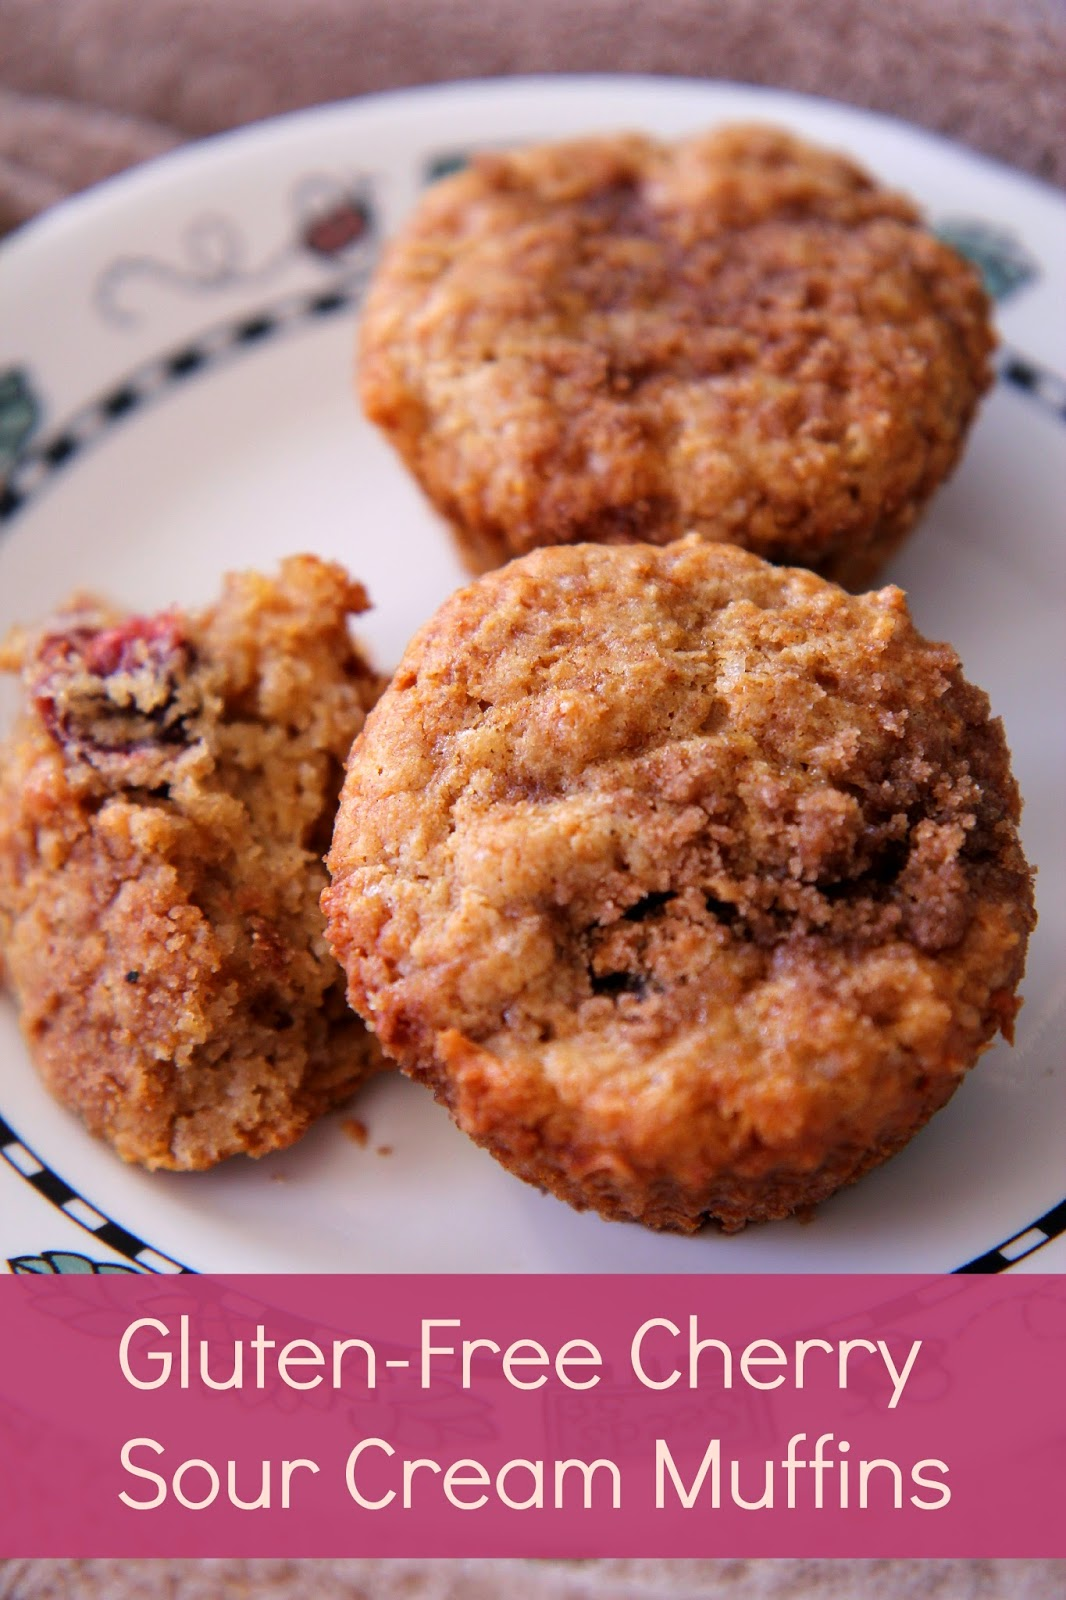 Looking for a gluten-free muffin recipe that doesn't taste GF? These cherry sour cream muffins fit the order!